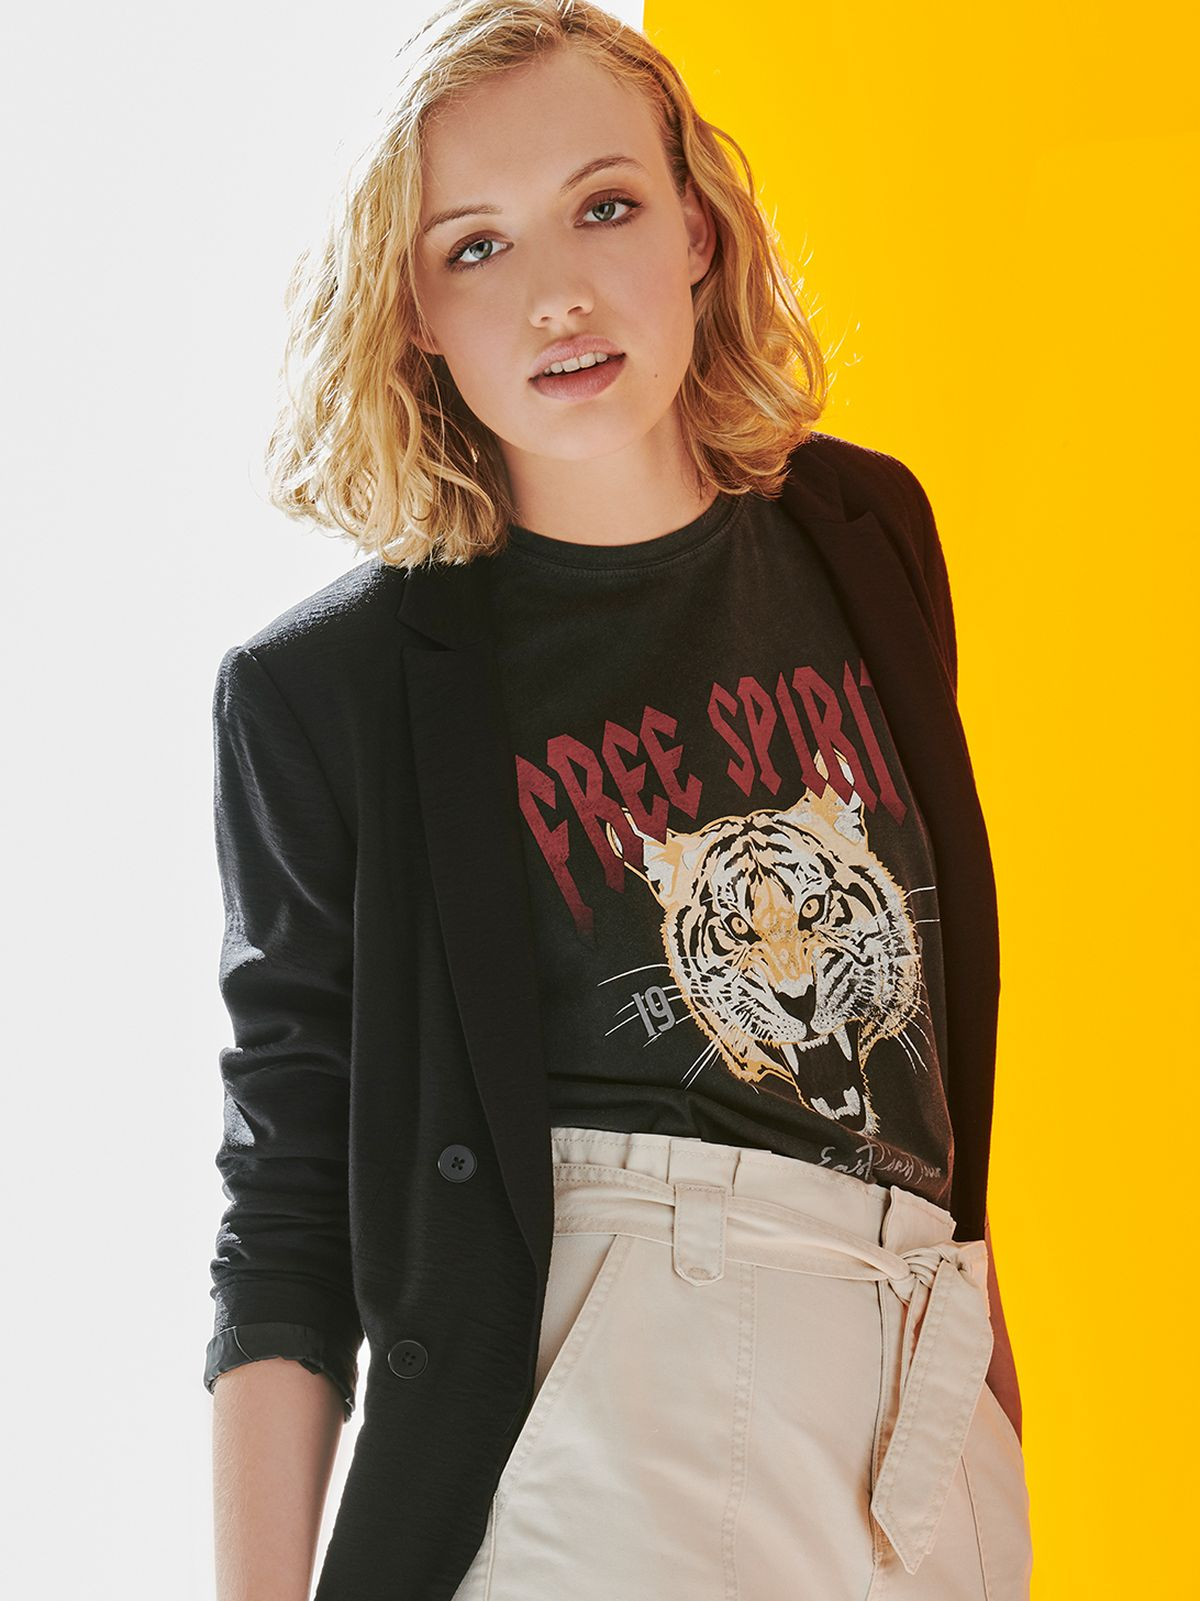 b09f72391eac0 Women's Clothes | Women's Clothing & Fashion Online | New Look